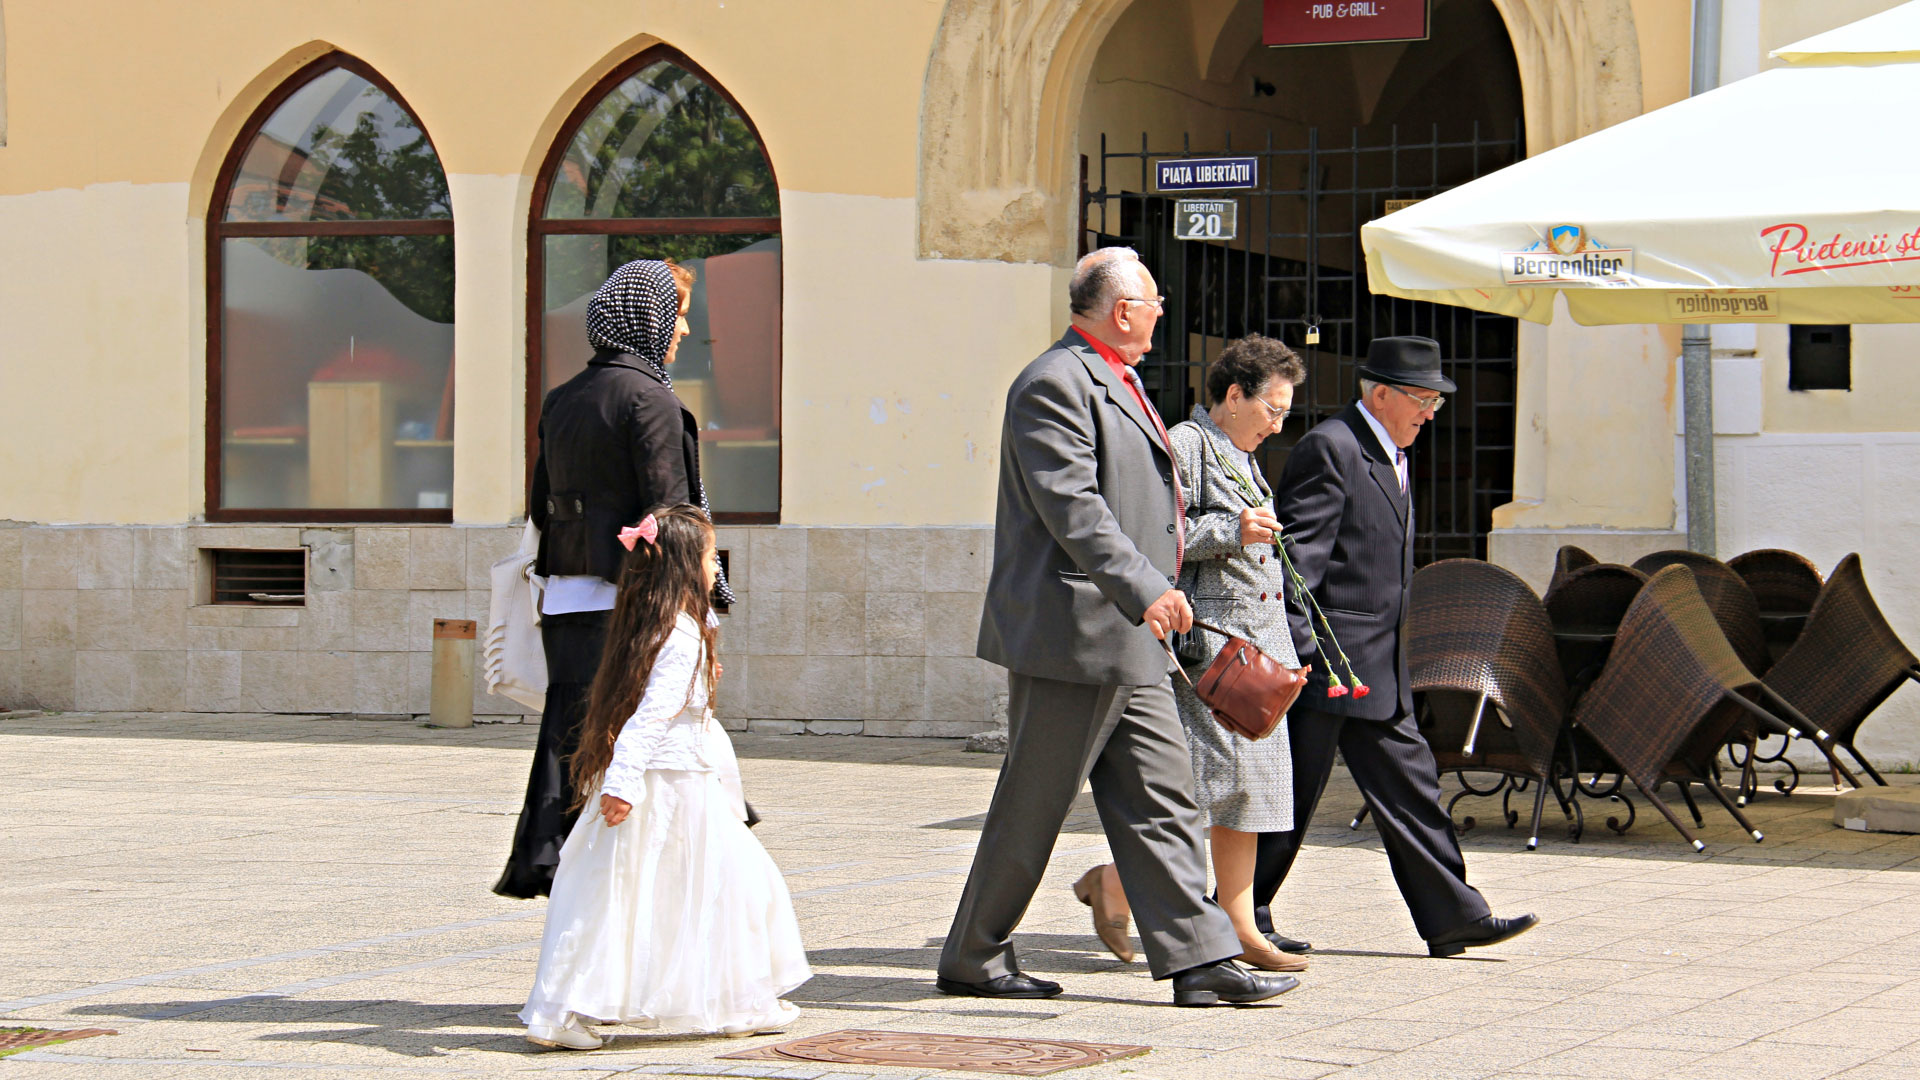 Locals in the city of Baia Mare, dressed up for Easter time. Photo by Ovidiu Balaj